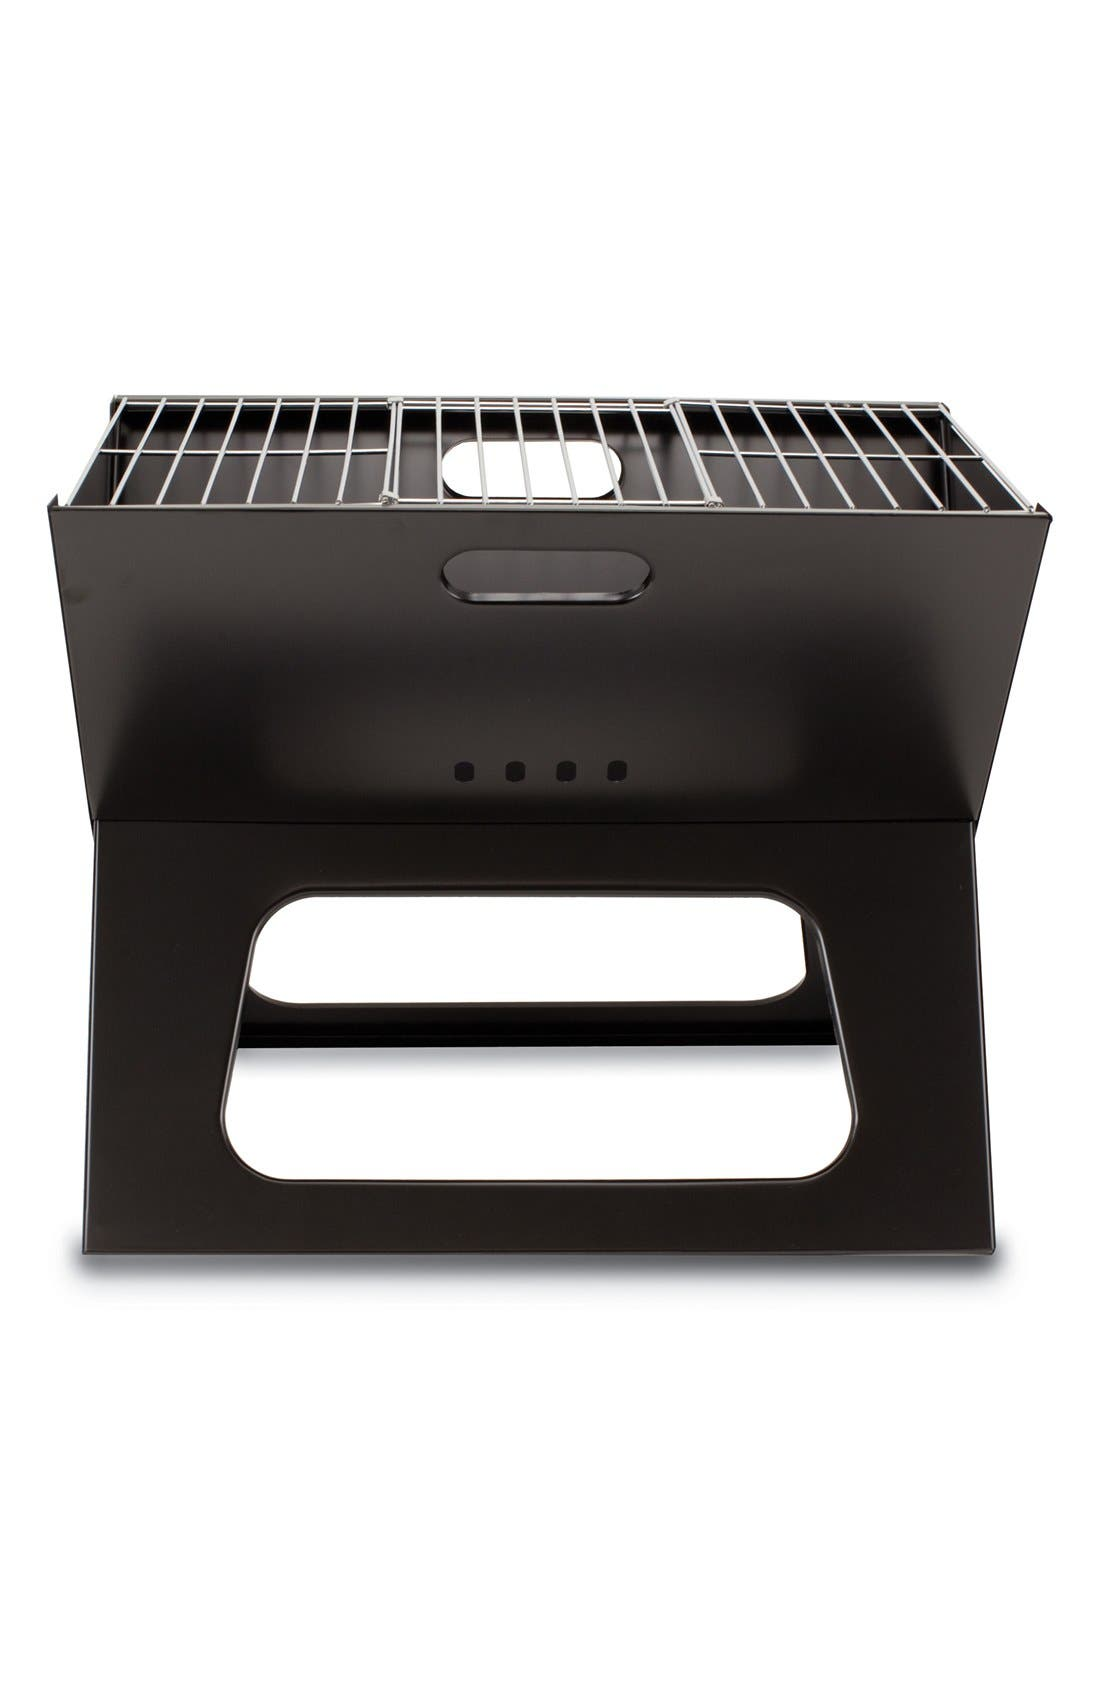 'X-Grill' Portable Fold-Up BBQ Grill,                             Alternate thumbnail 3, color,                             Black